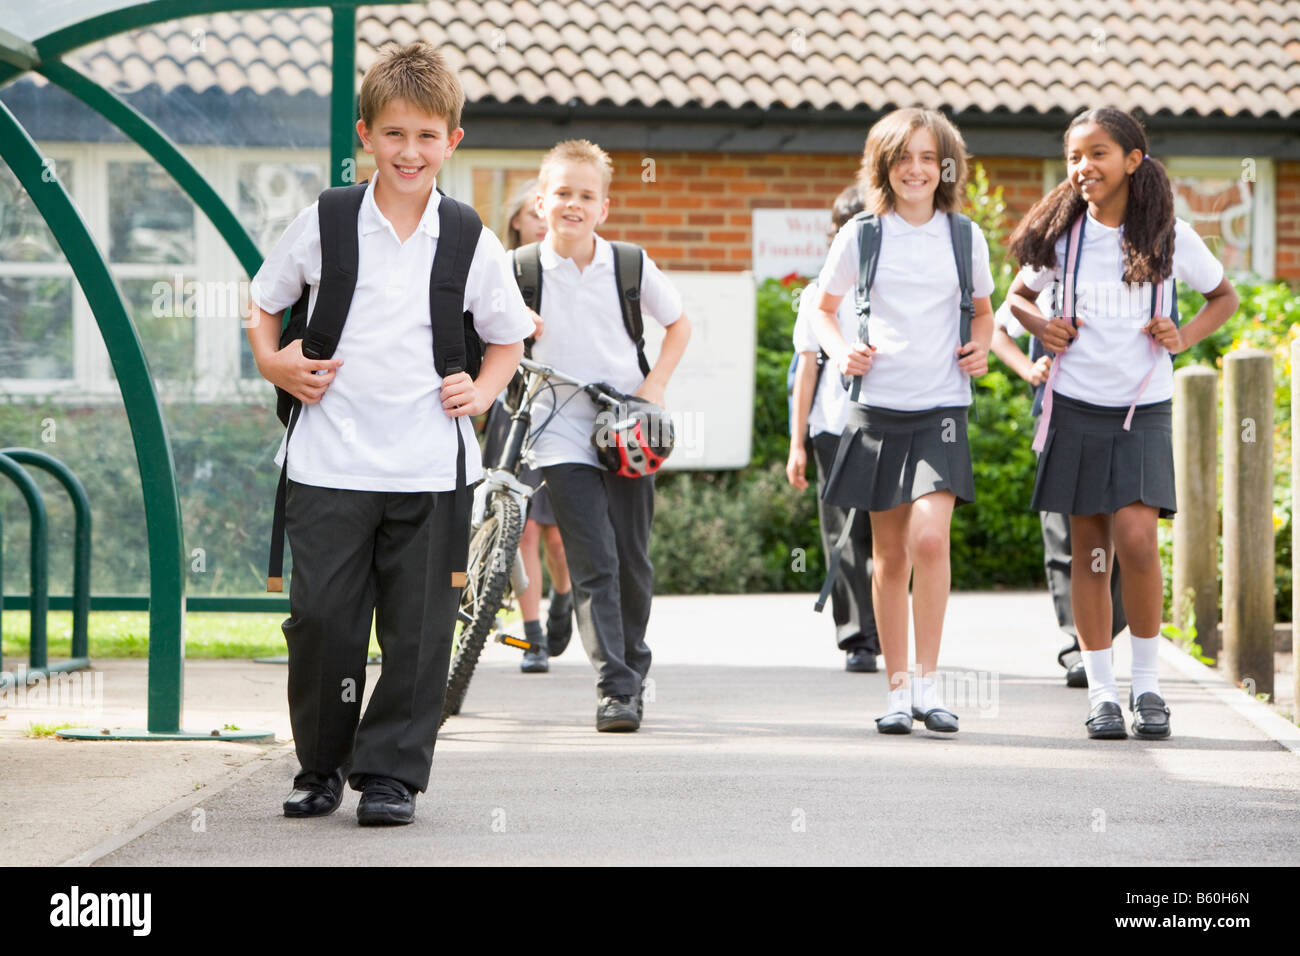 Students leaving school one with a bicycle - Stock Image